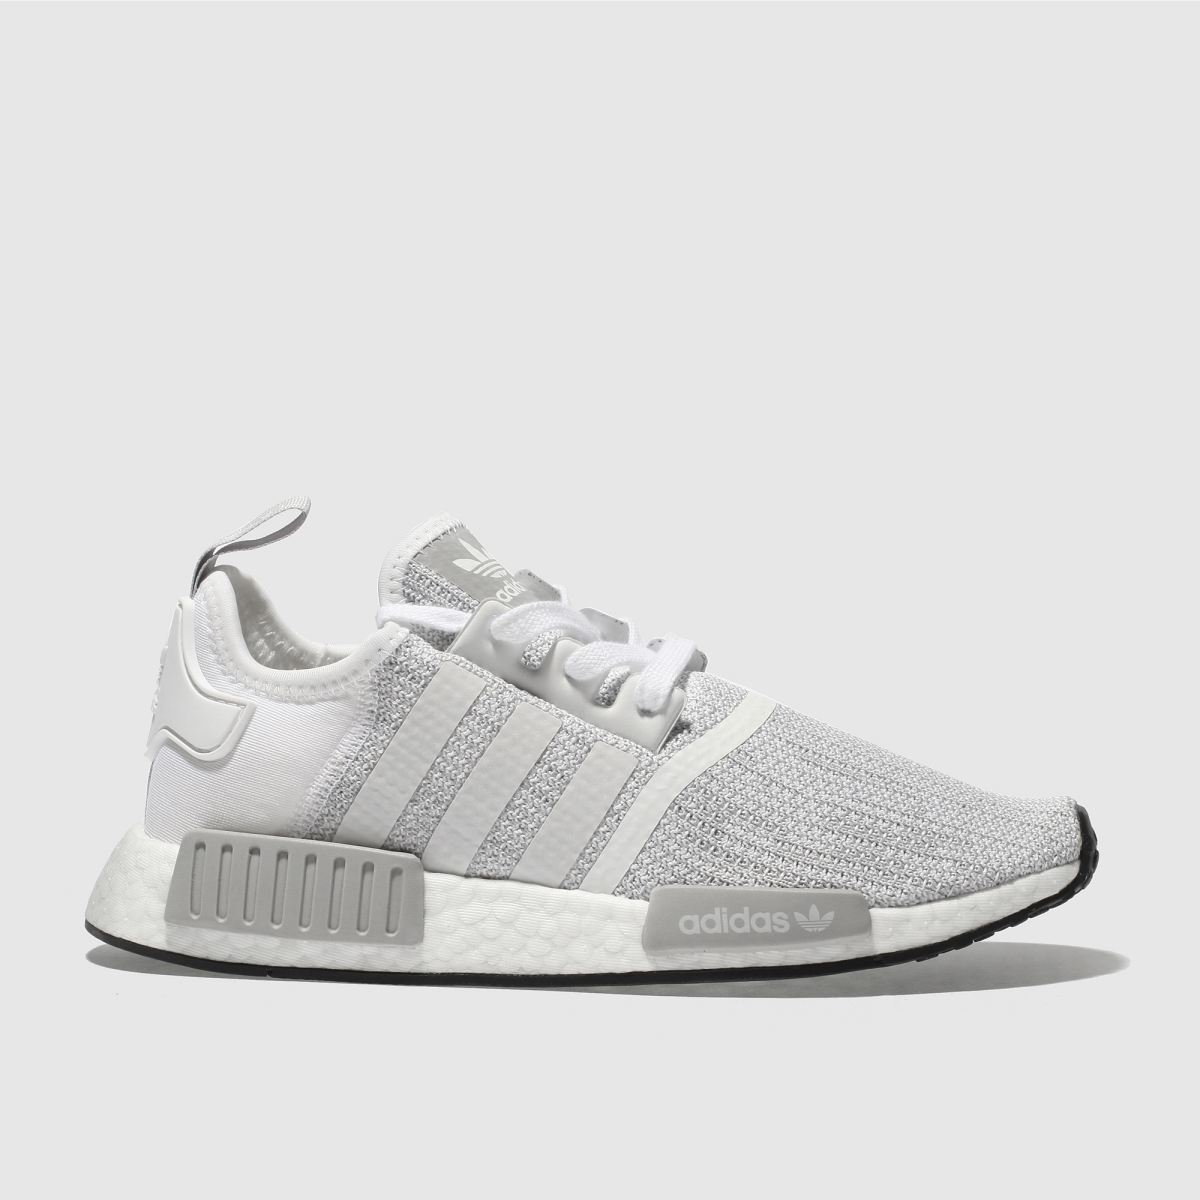 Adidas White & Grey Nmd R1 Trainers